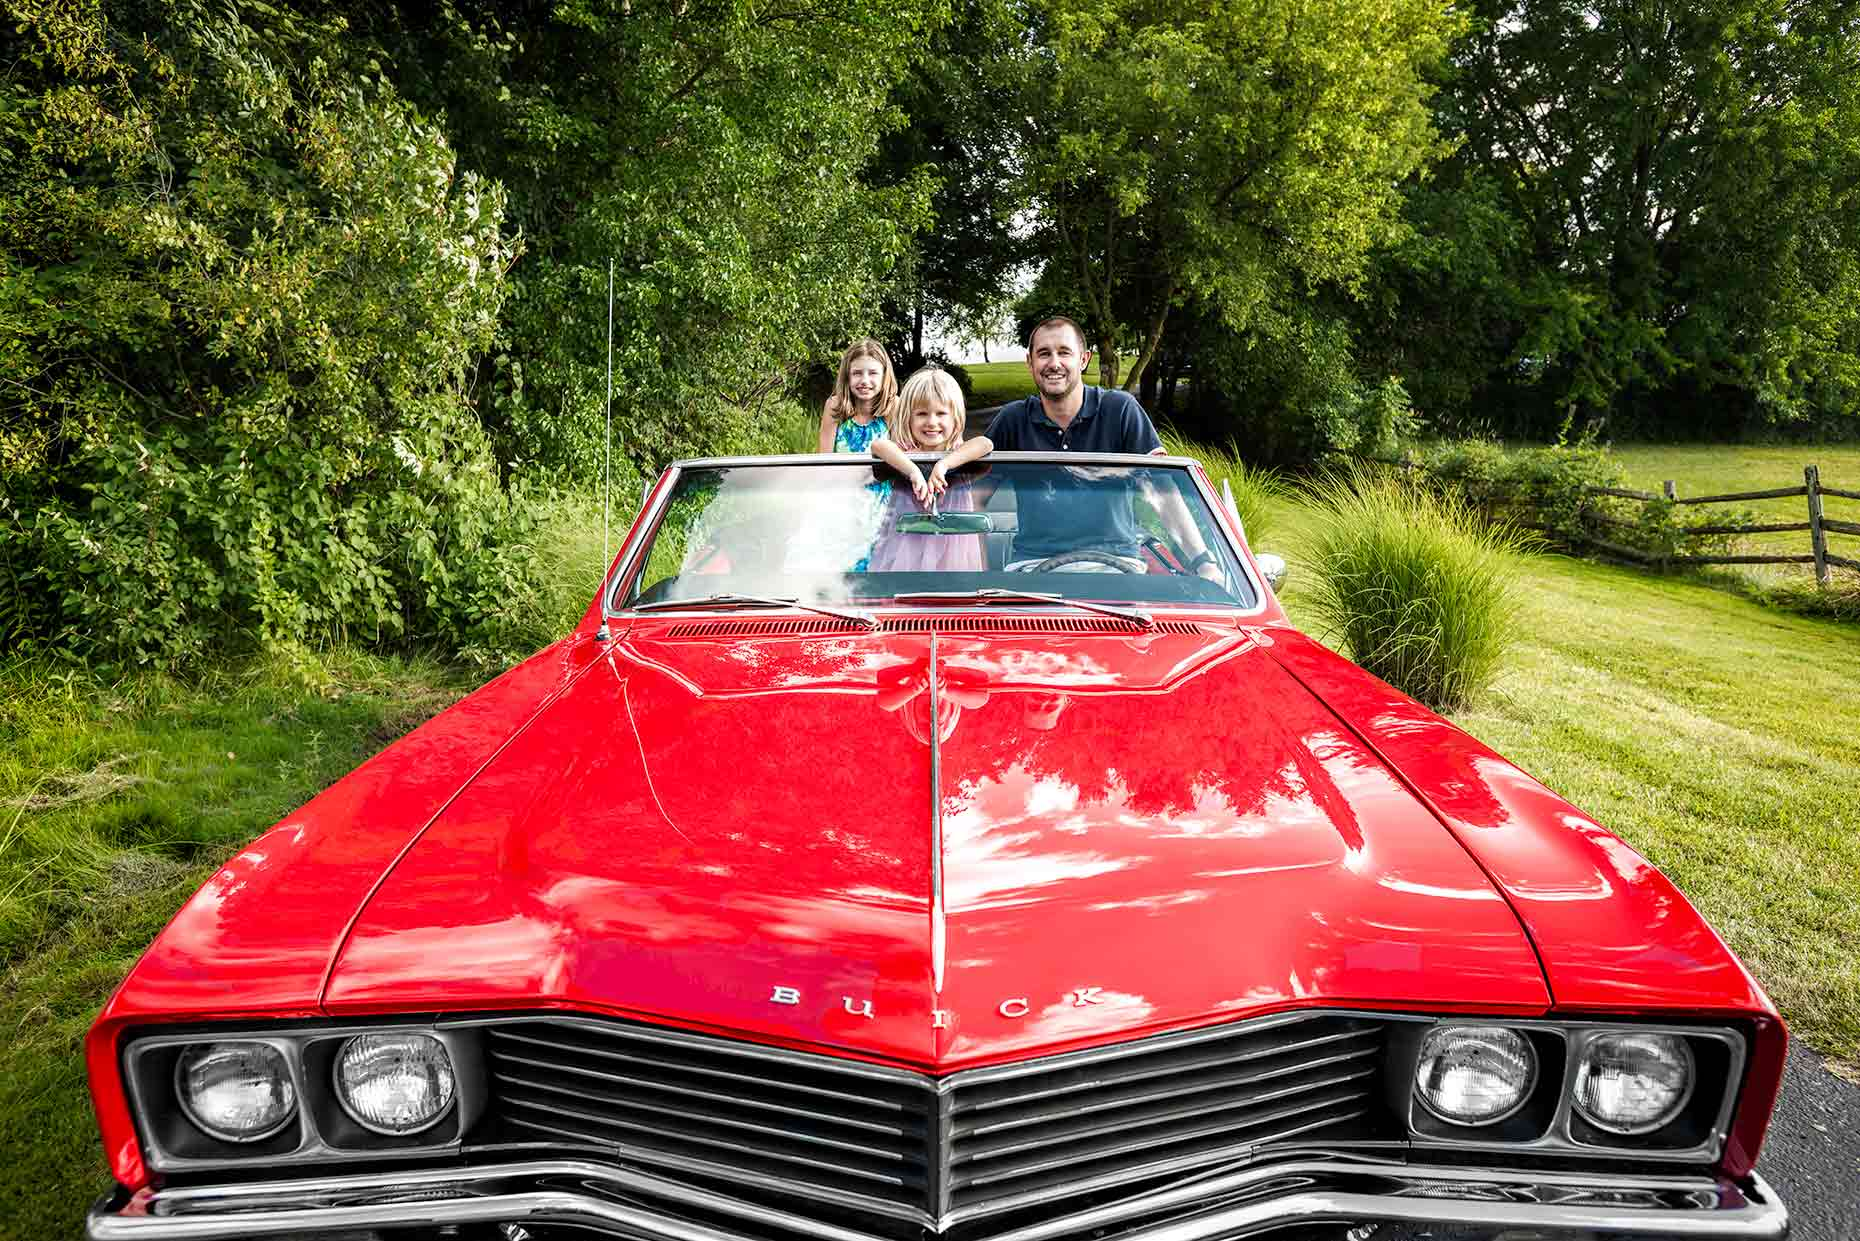 Family enjoying  a classic american car | Roby Fabro photography